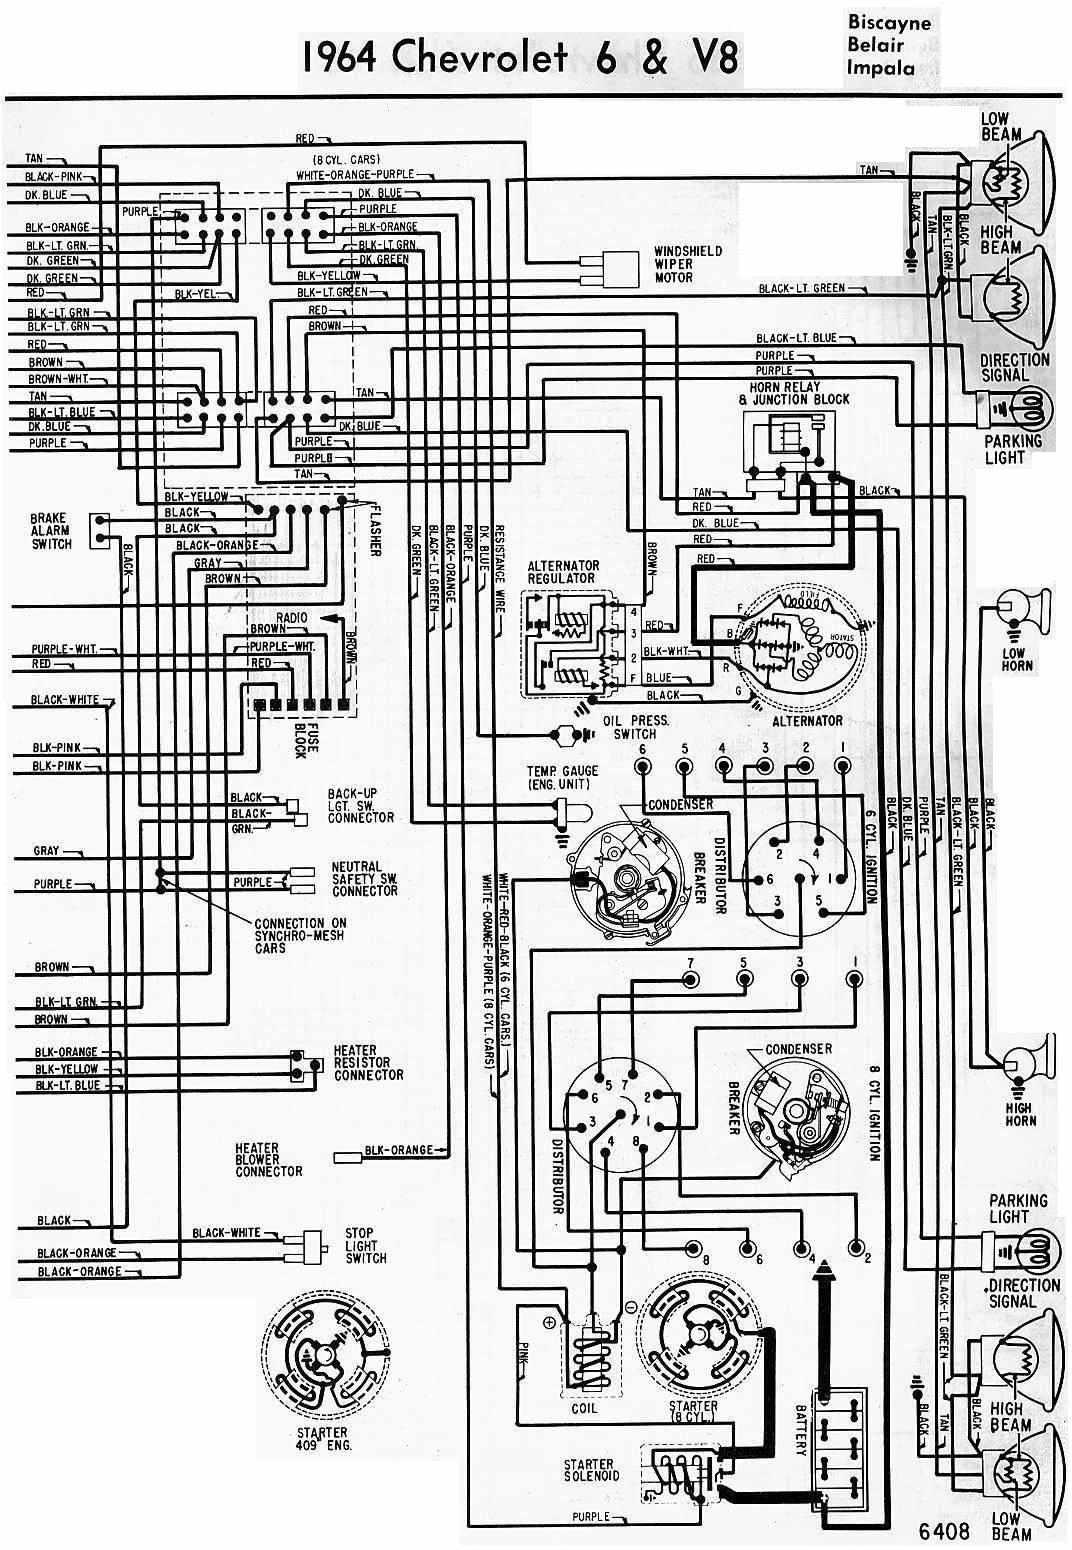 Electrical+Wiring+Diagram+Of+1964+Chevrolet+6+And+V8 1964 bel air wire diagram colors incorrect chevytalk free 1964 chevy truck wiring diagram at suagrazia.org